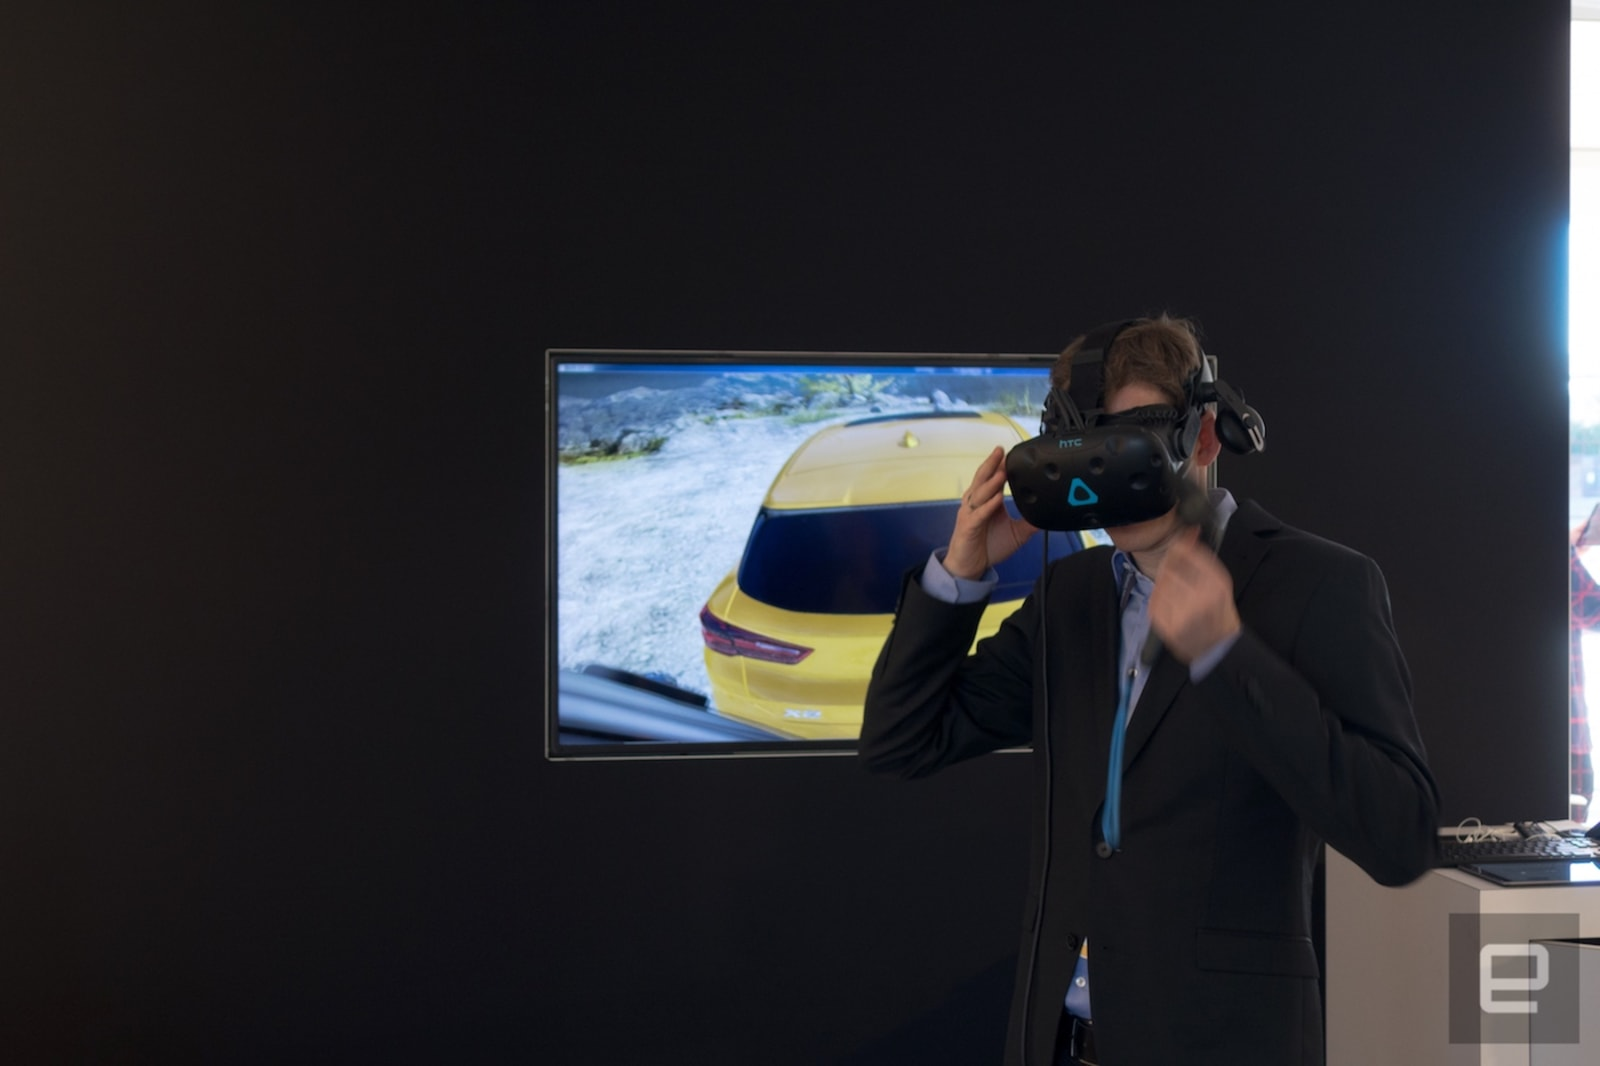 BMW used virtual reality to bring its latest crossover SUV